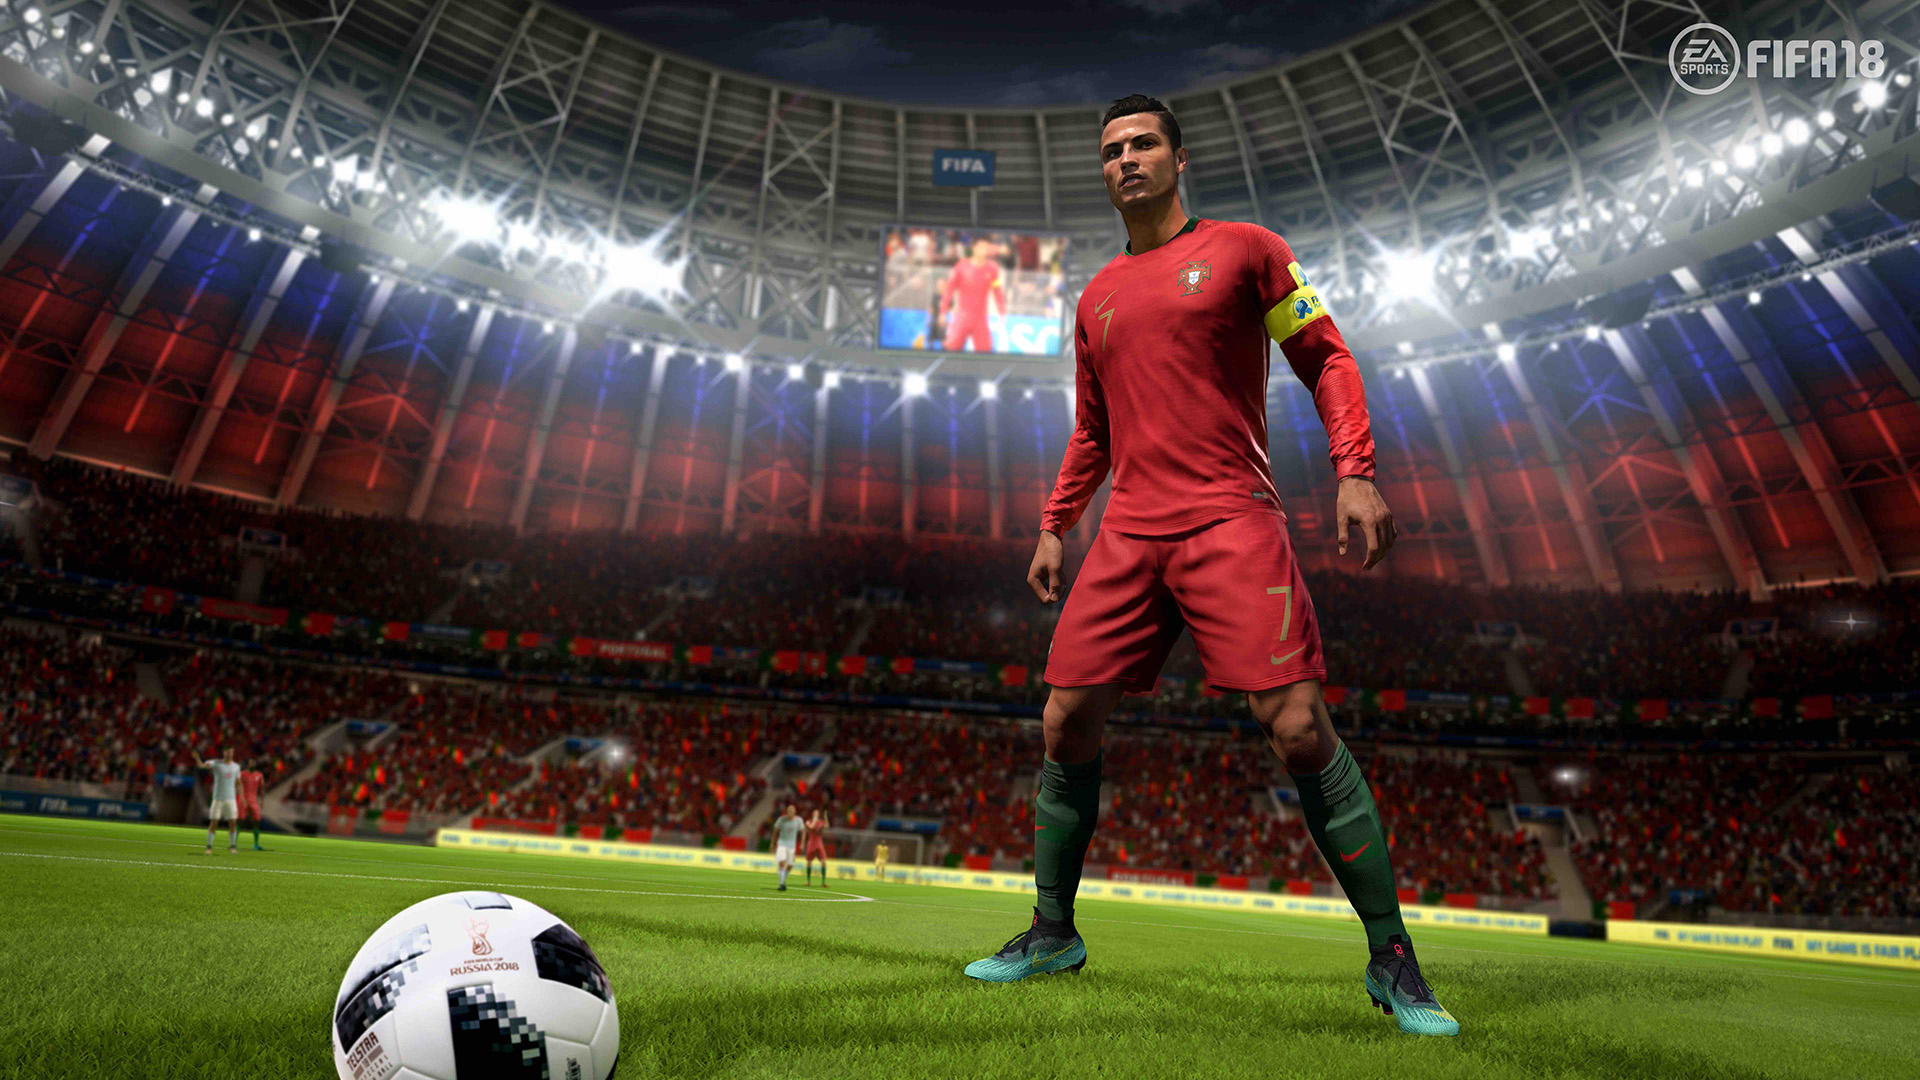 FIFA 18 World Cup video game When is it released how to for free & Ultimate Team details revealed